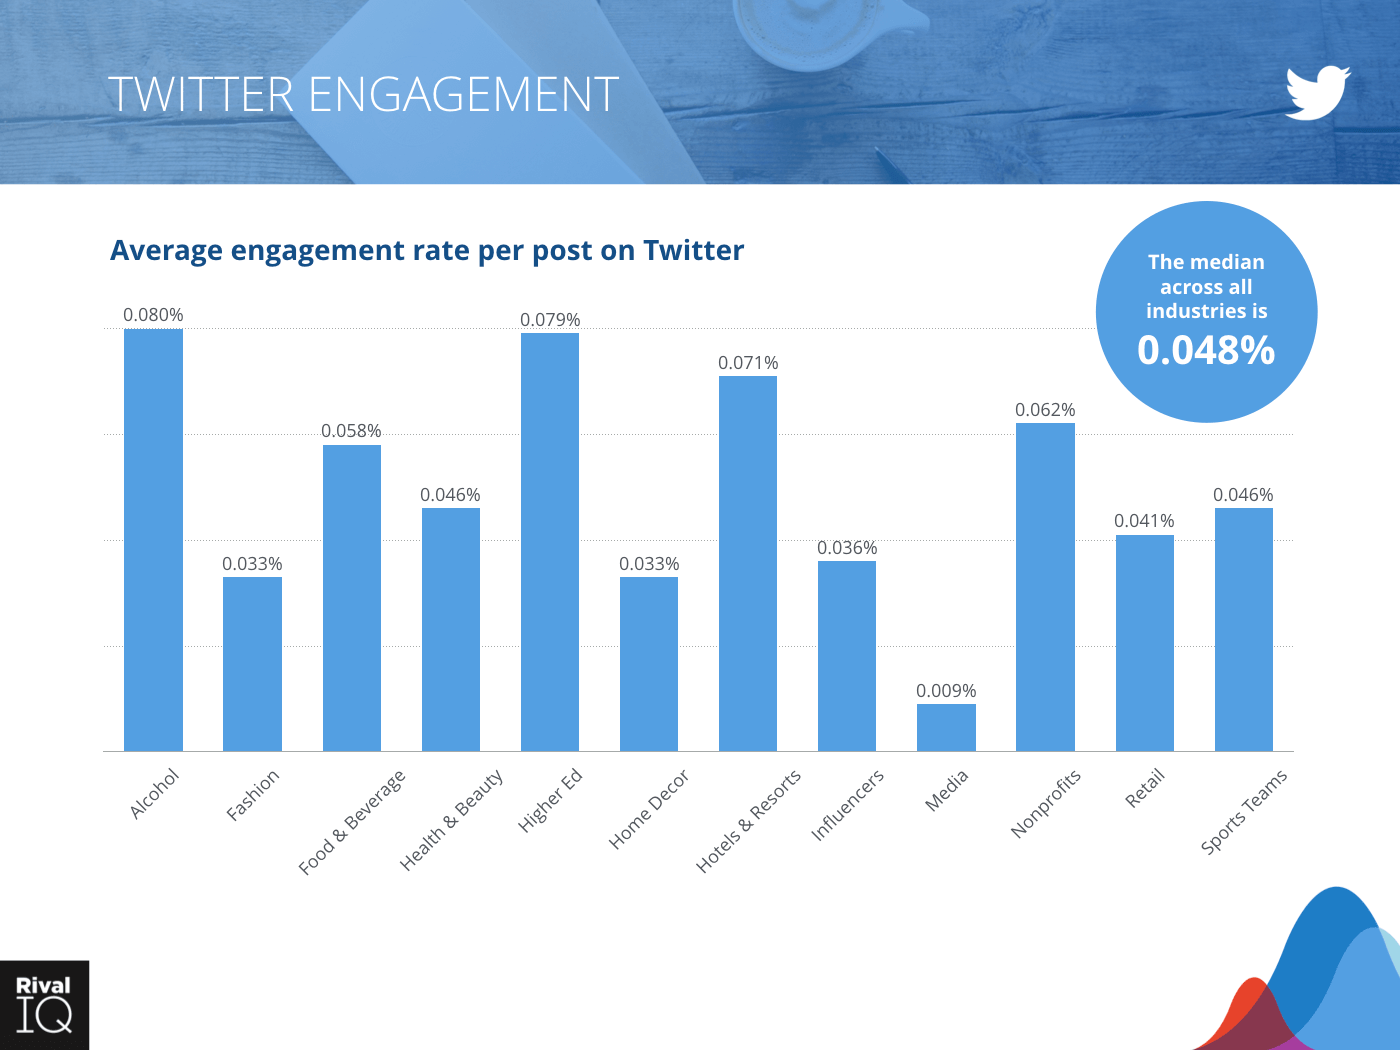 Bar graph showing average engagement rate per post on Twitter across all industries, median is .048%